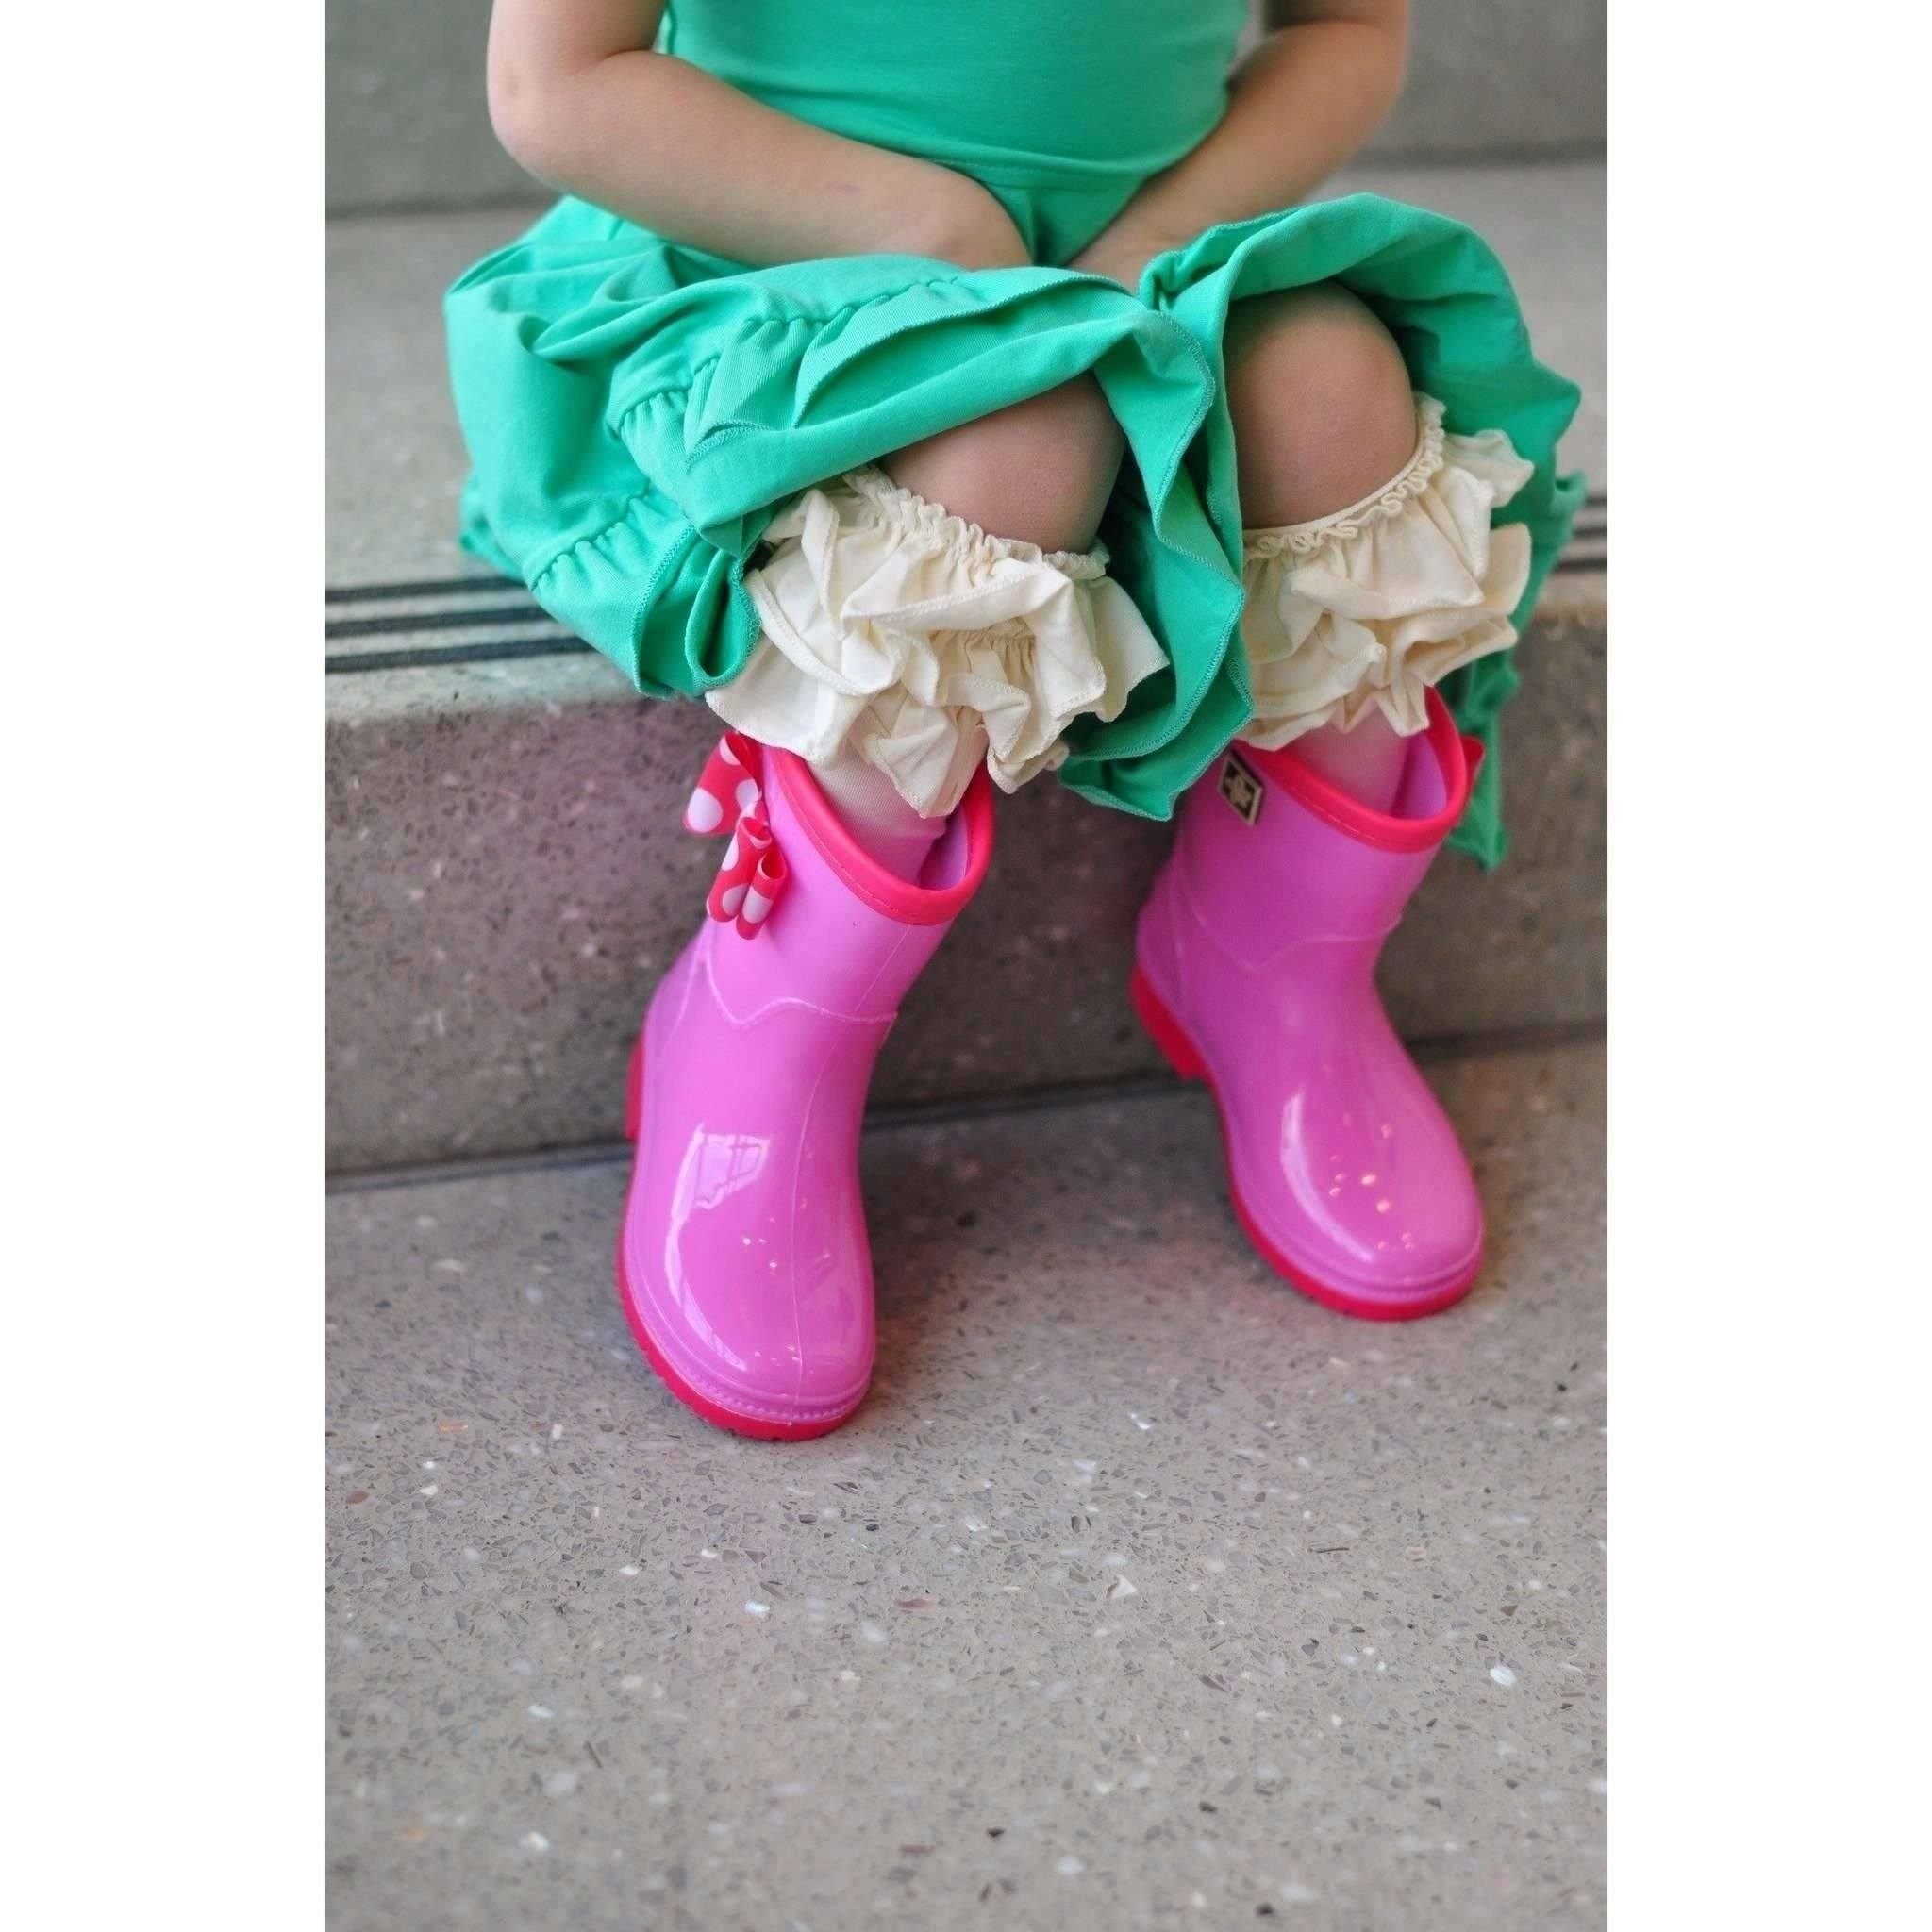 Adorable Essentials, Triple Ruffle Socks,socks & tights,Adorable Essentials, LLC